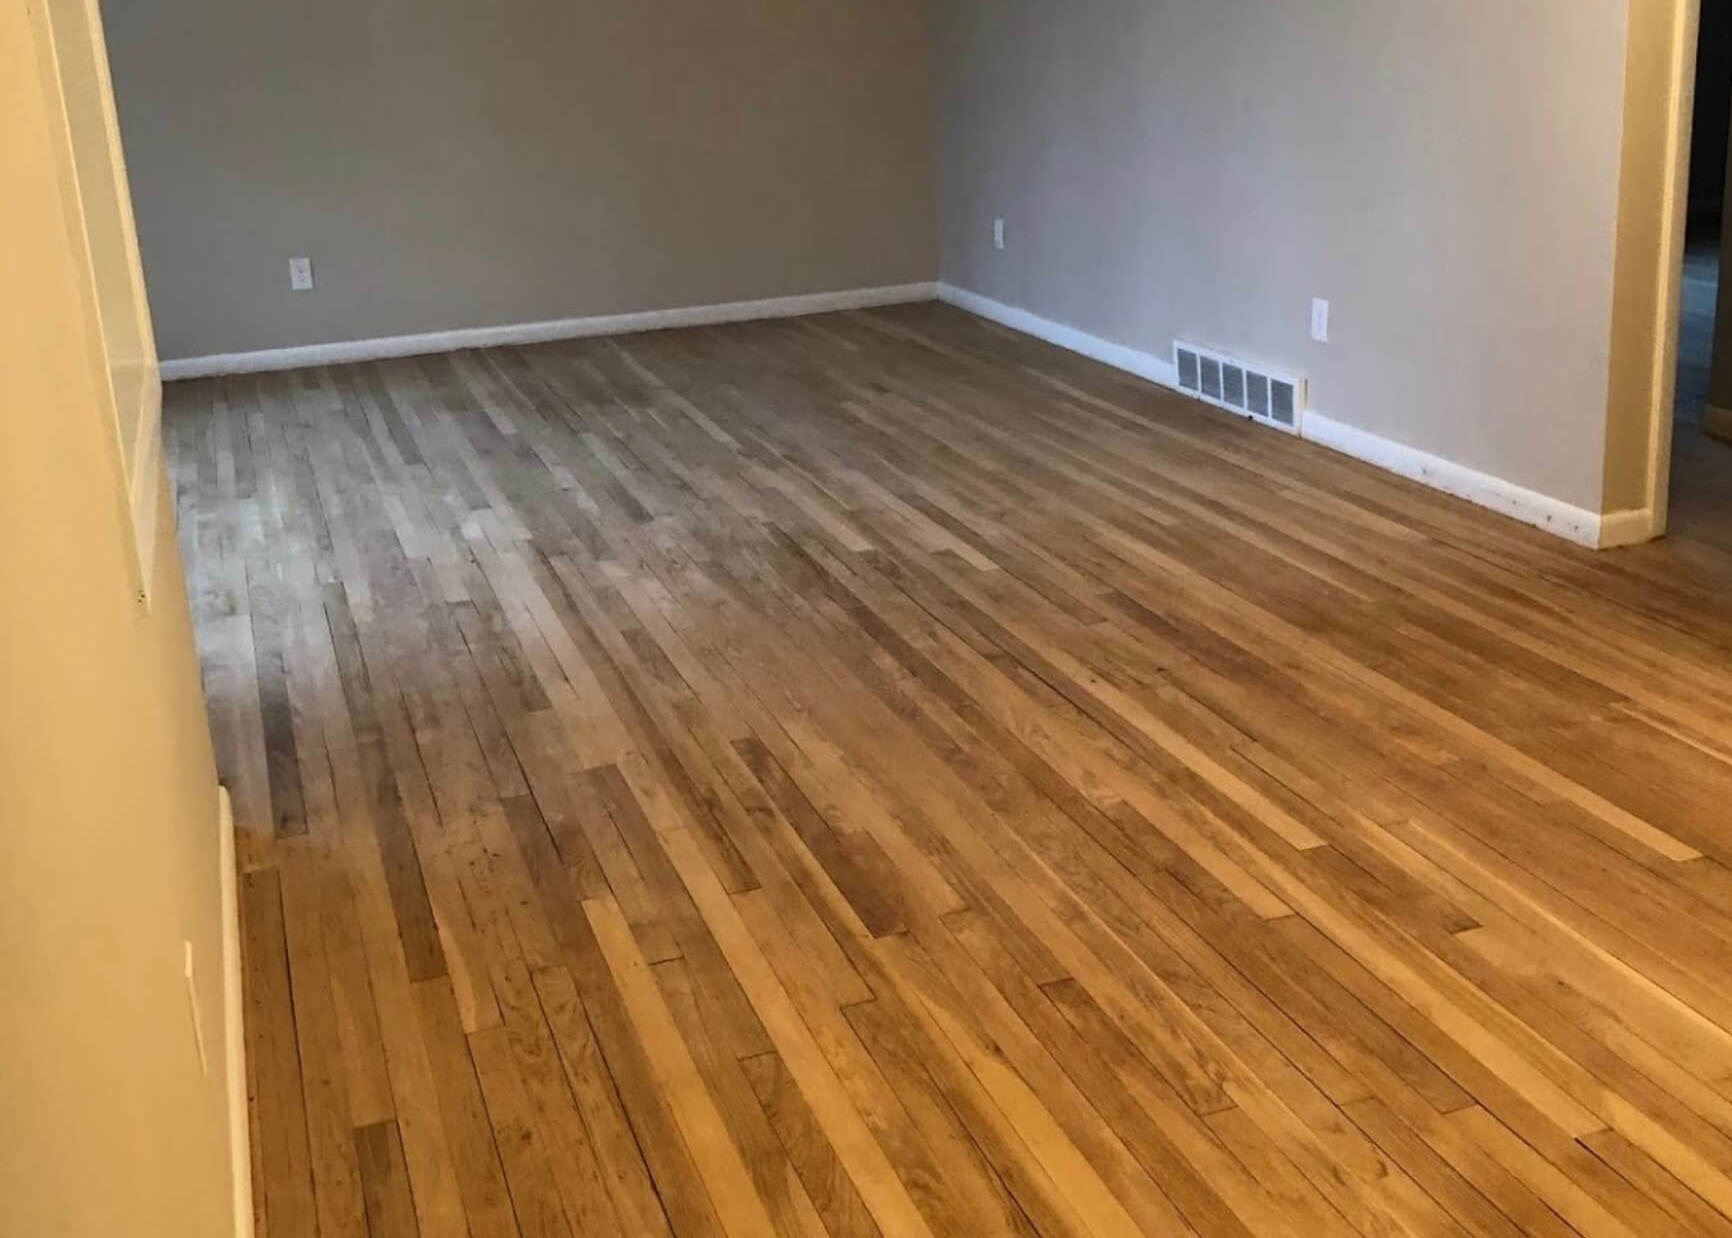 A floor that needs to be refinished